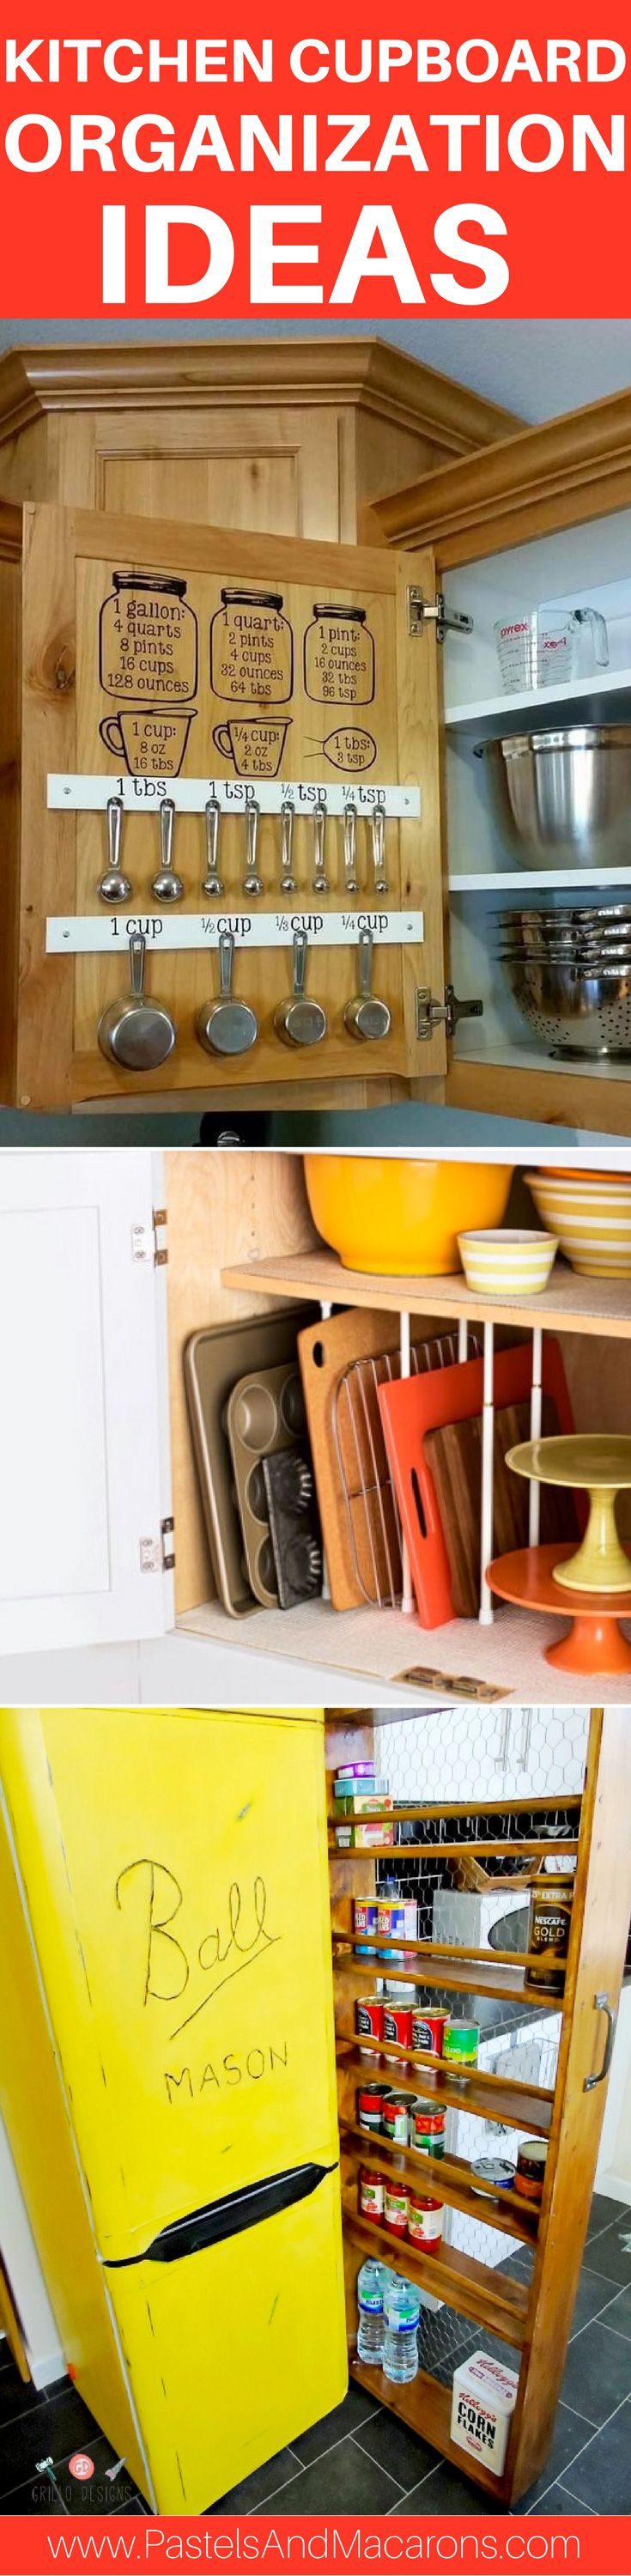 Best 25 small kitchen ideas diy ideas on pinterest small 7 awesome kitchen cupboard organization ideas you must try diy solutioingenieria Gallery